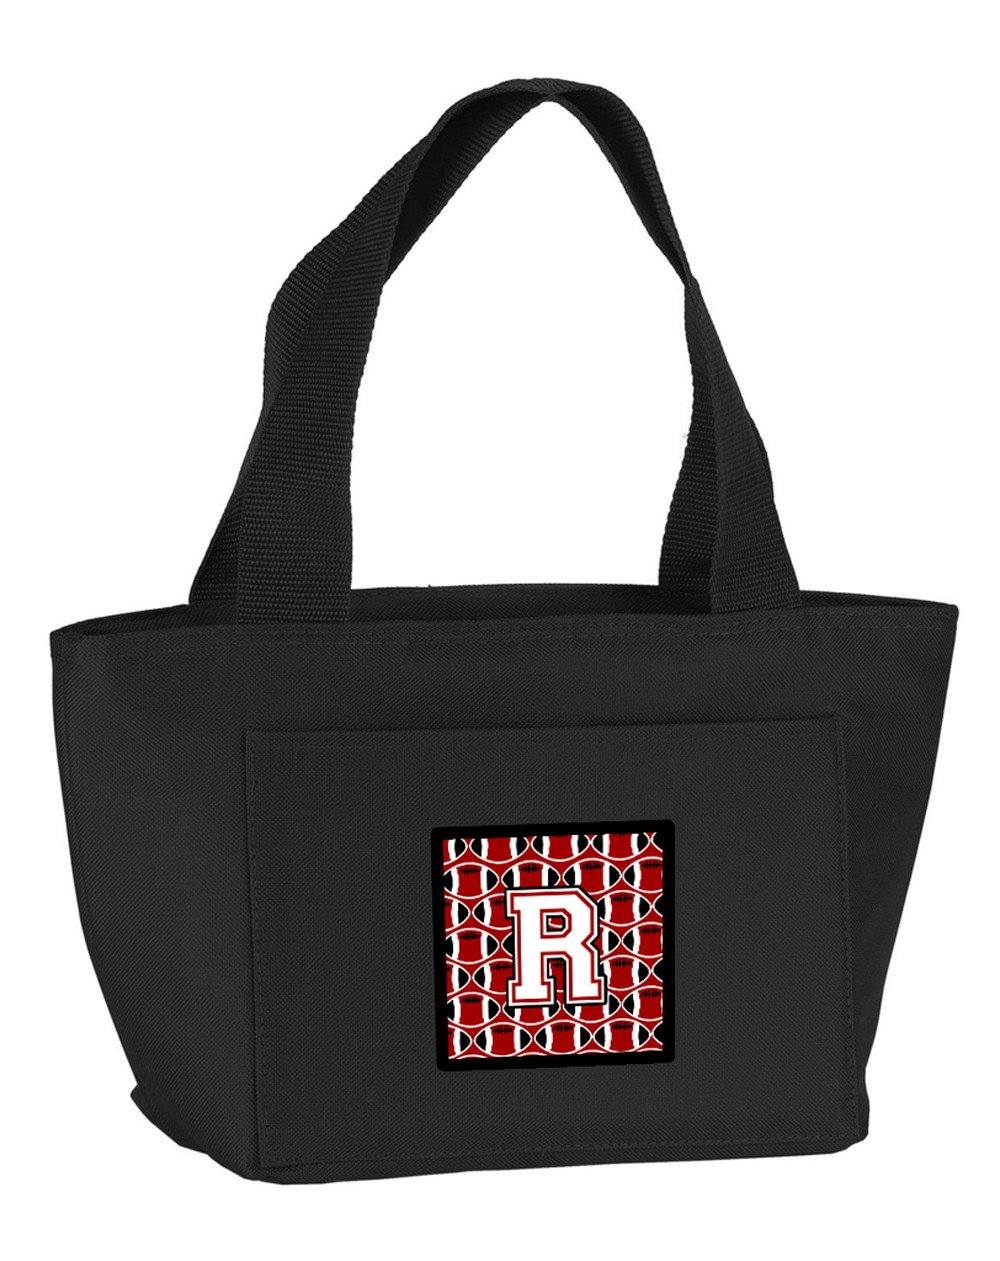 Letter R Football Cardinal and White Lunch Bag CJ1082-RBK-8808 by Caroline's Treasures